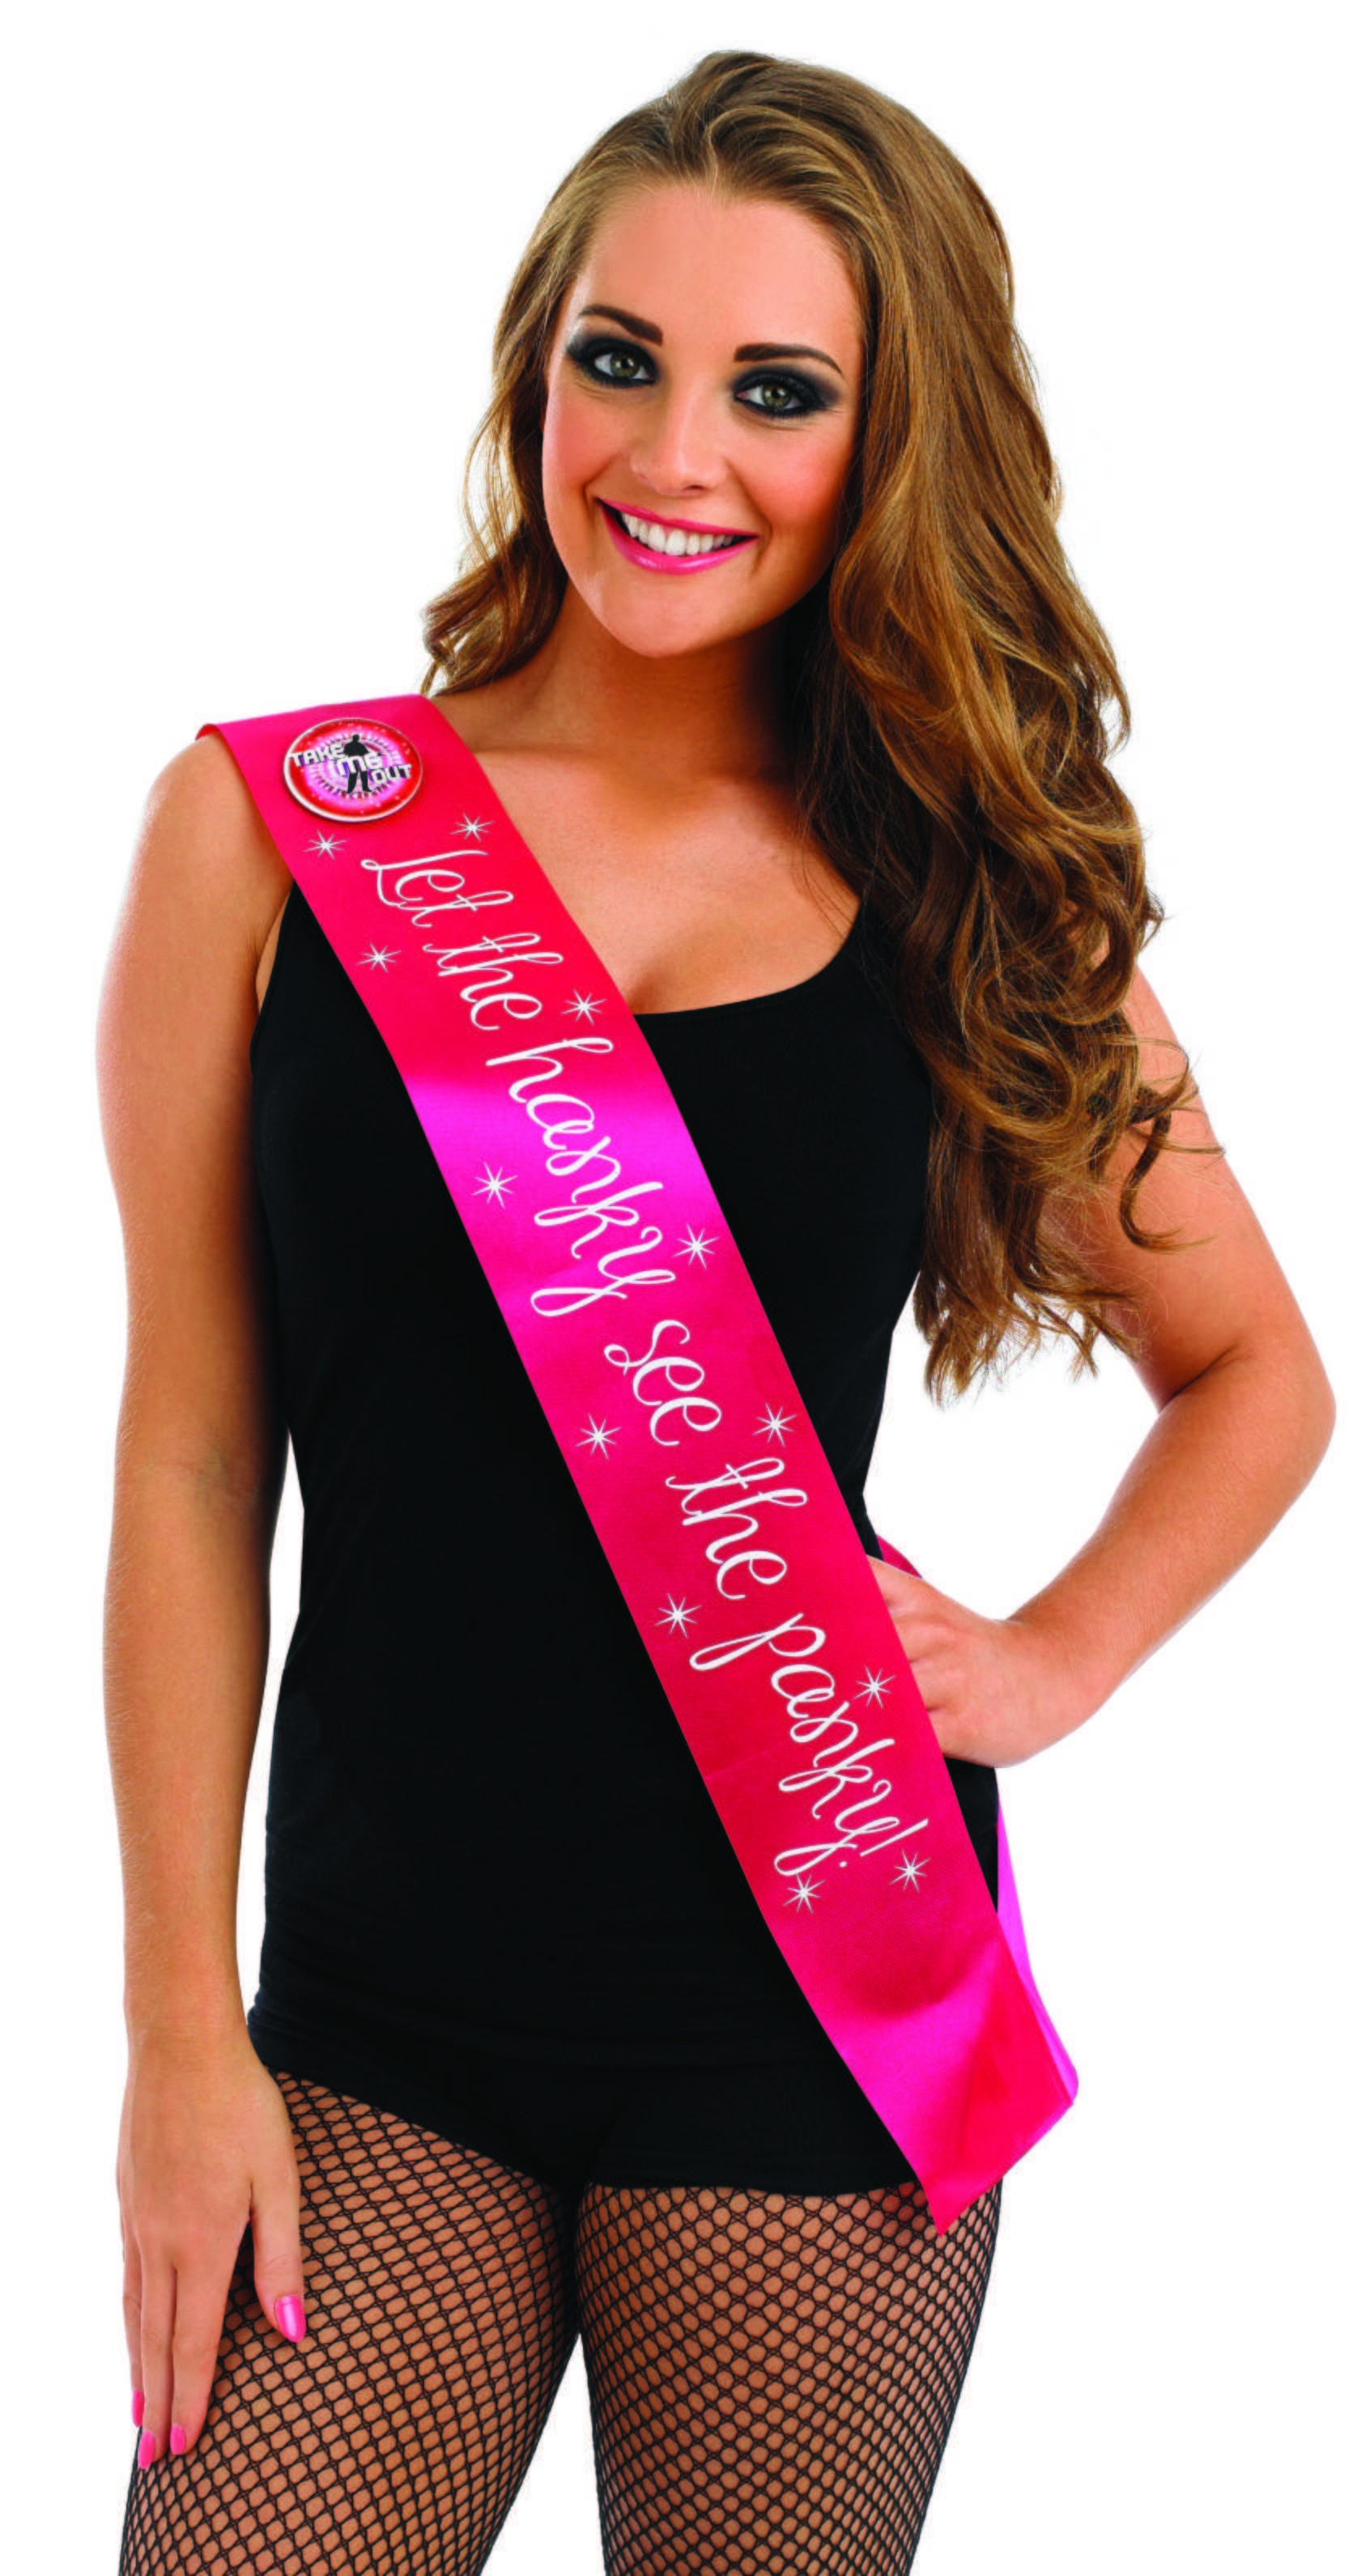 Take Me Out Hen Party Accessory Let The Hanky See The Panky Flashing Sash